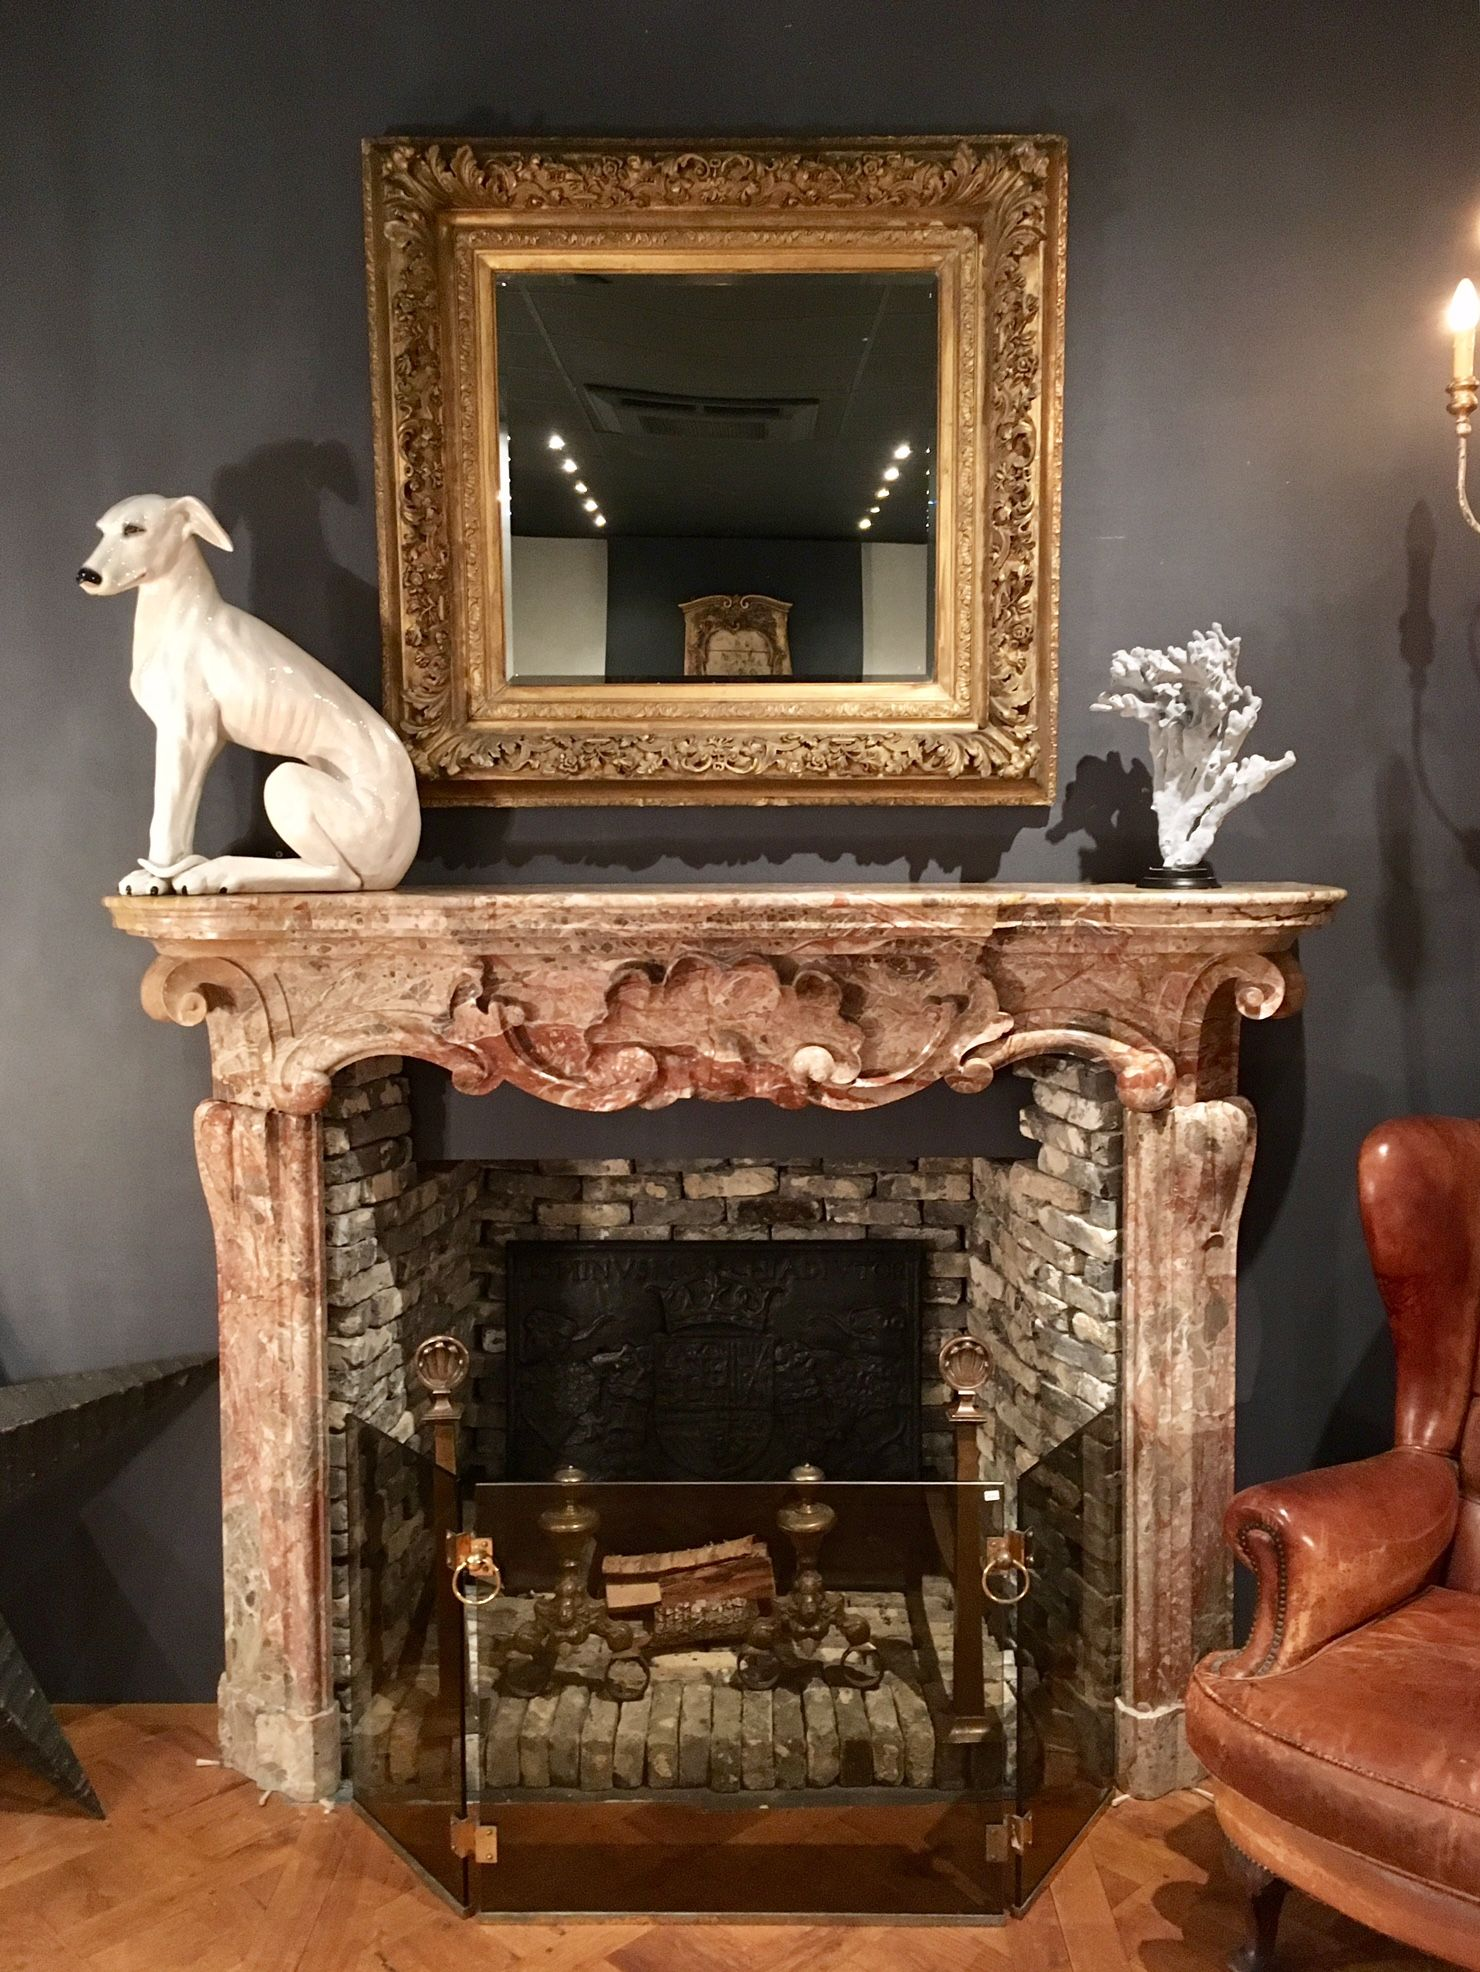 rouge royal marble fireplace antique interior sculpture dog gold mirror antique